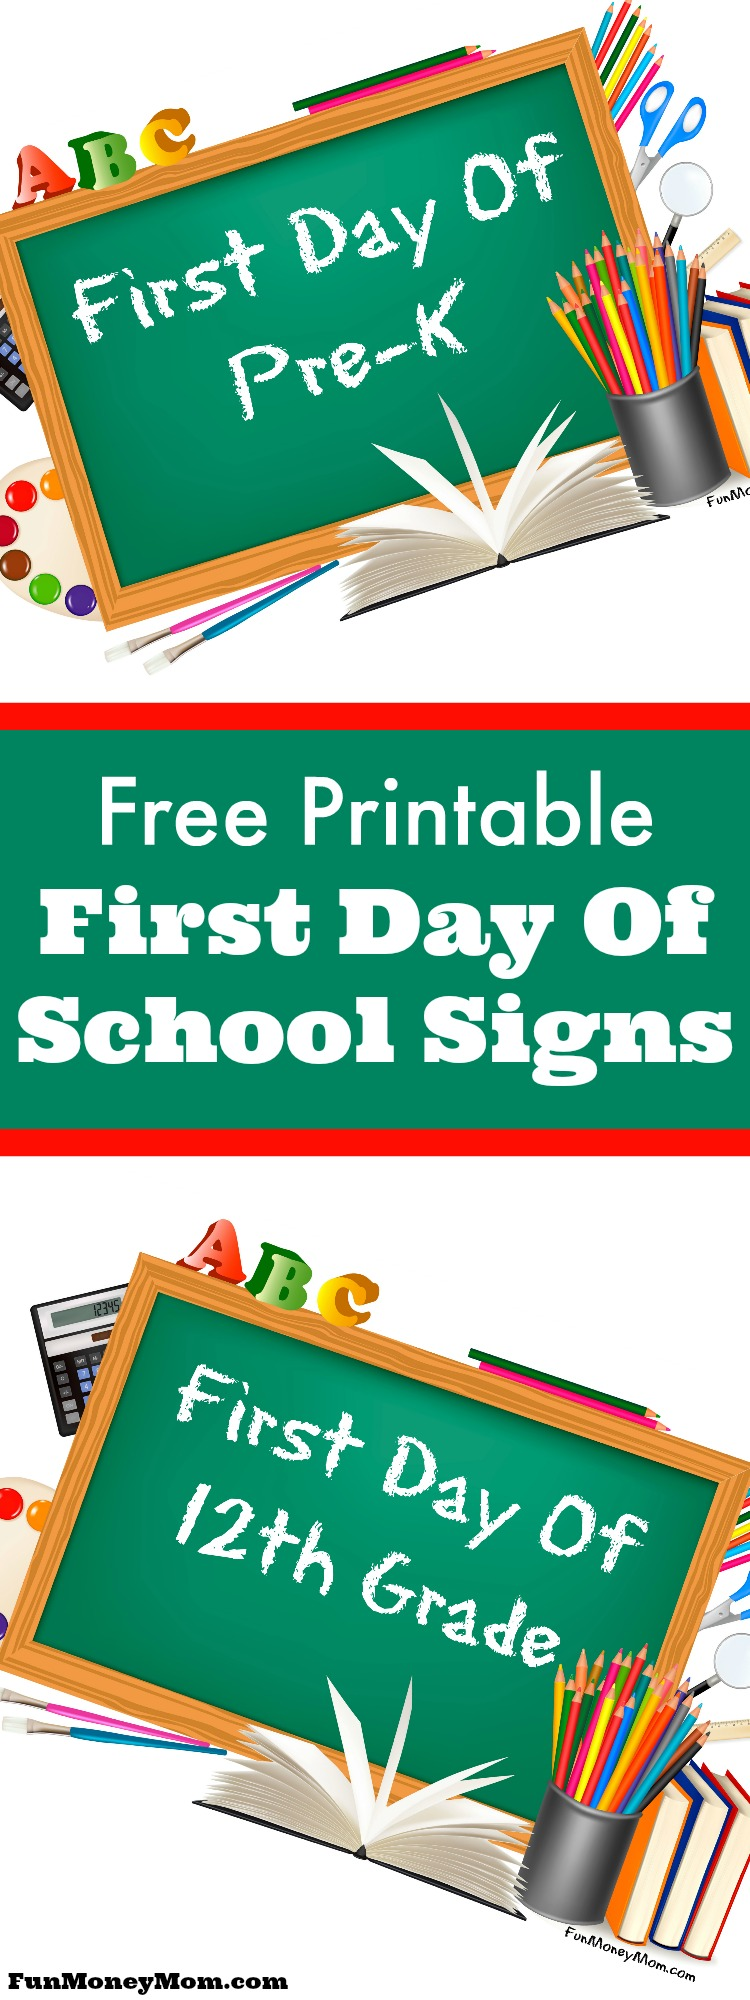 Are your kids getting ready to start a new school year? If so, you'll want plenty of photos. Why not make them memorable with these fun First Day Of School Signs.